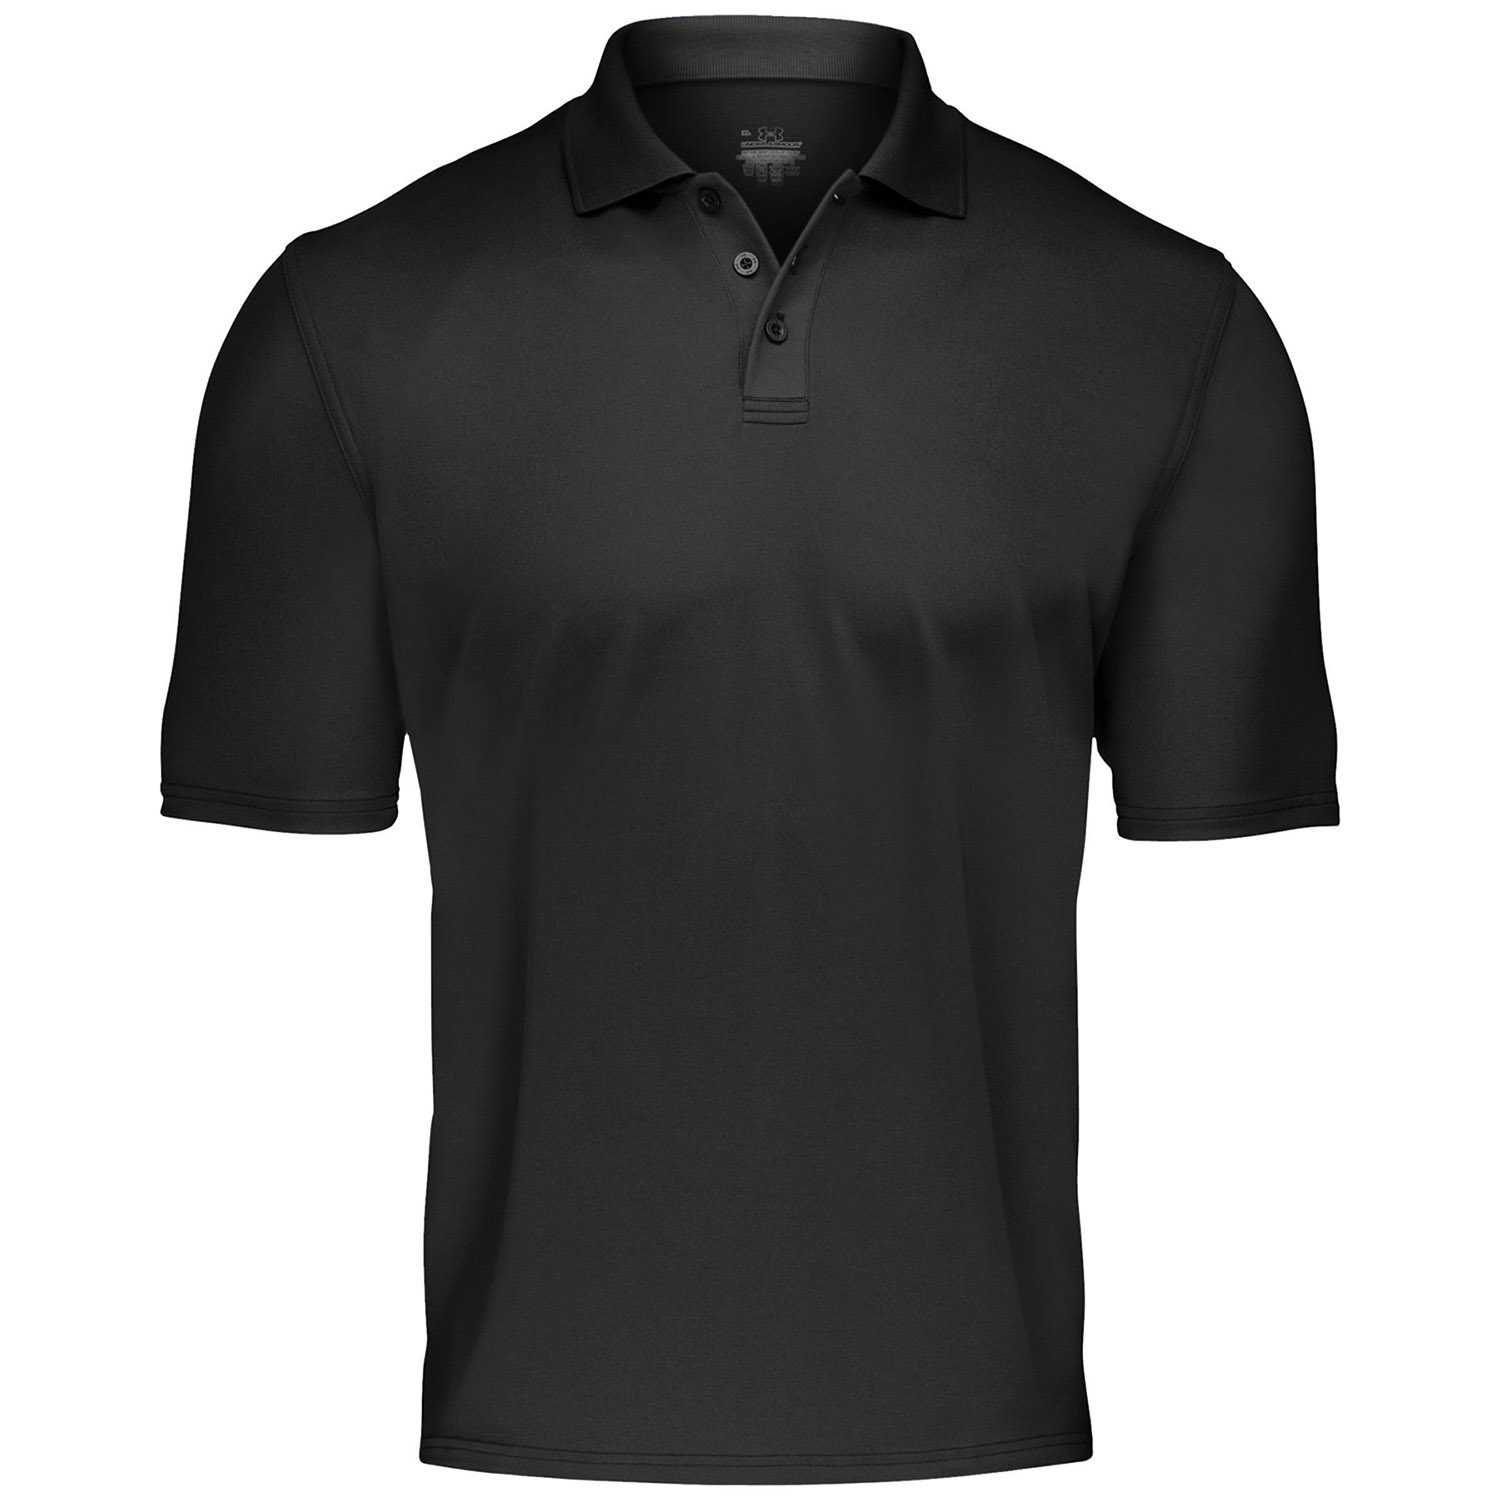 Under armour tactical range polo at galls for Under armor tactical t shirt